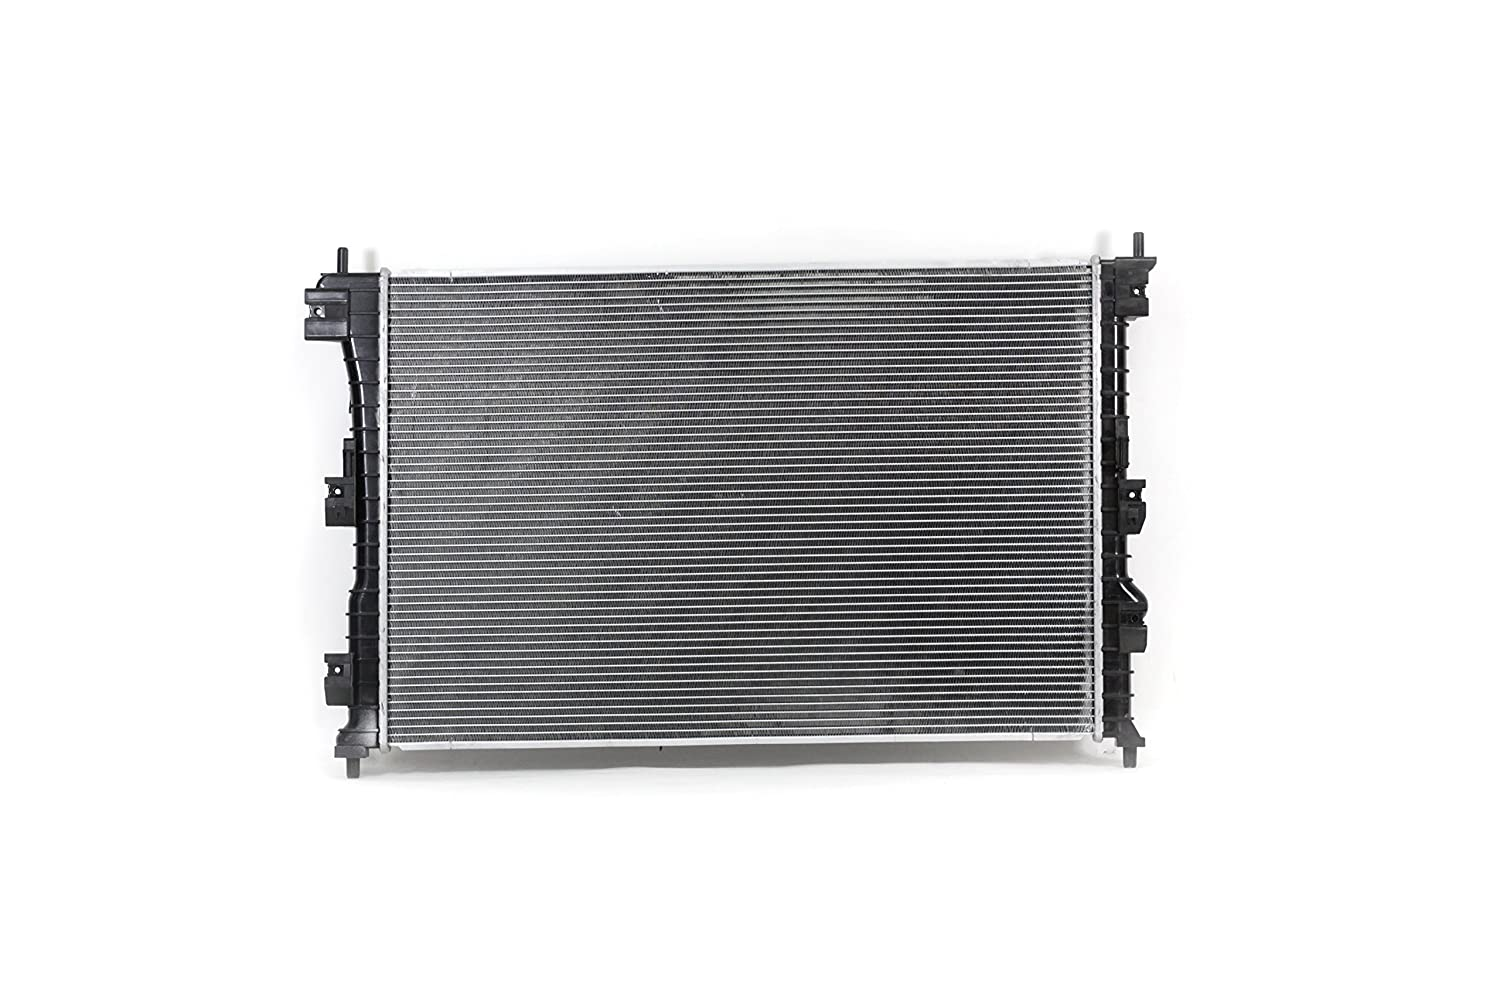 Amazon.com: Radiator - Cooling Direct For/Fit 13561 13-Apr14 Ford Explorer 3.5L Turbo WITH Power Take-Off Plastic Tank Aluminum Core: Automotive